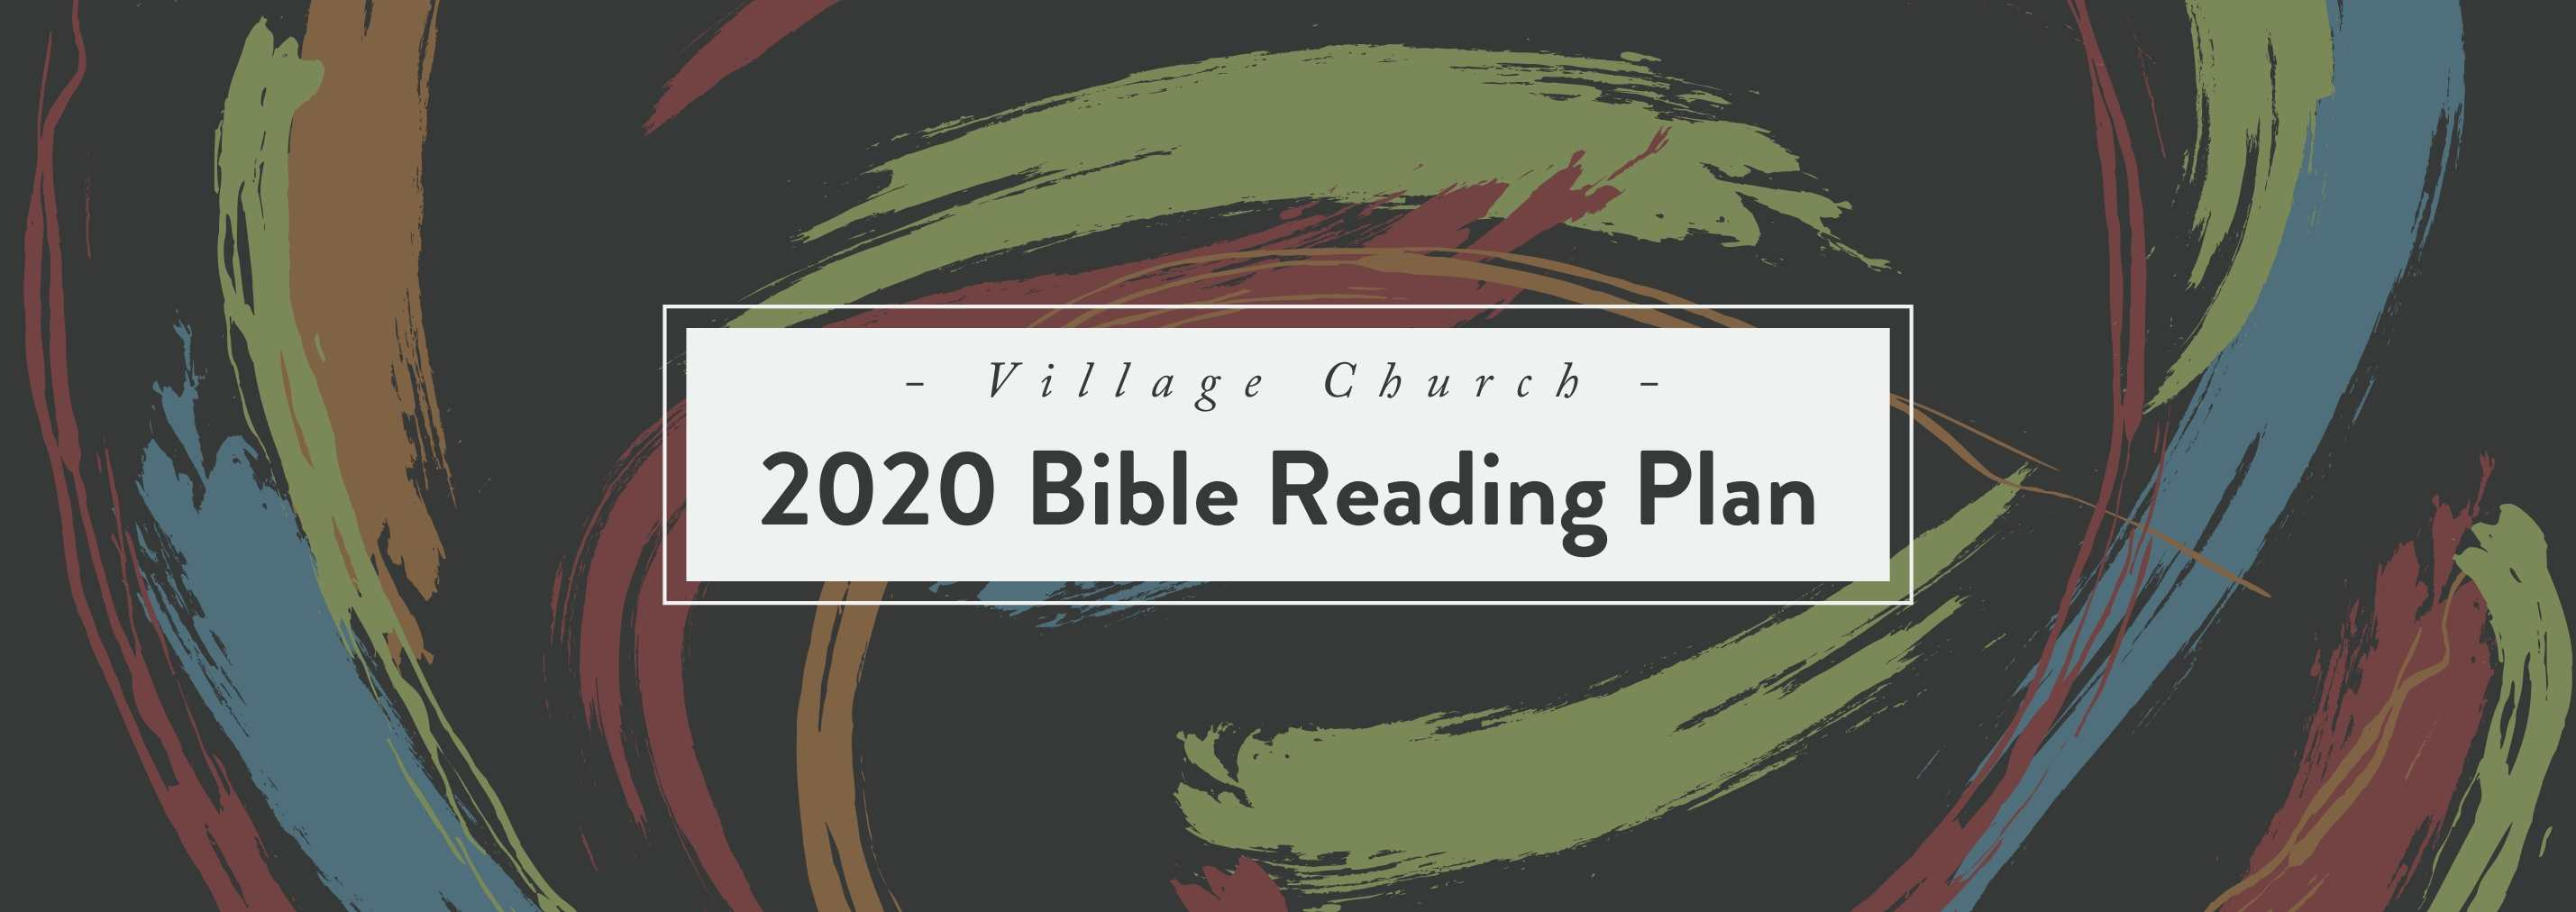 2020 Bible Reading Plan-2